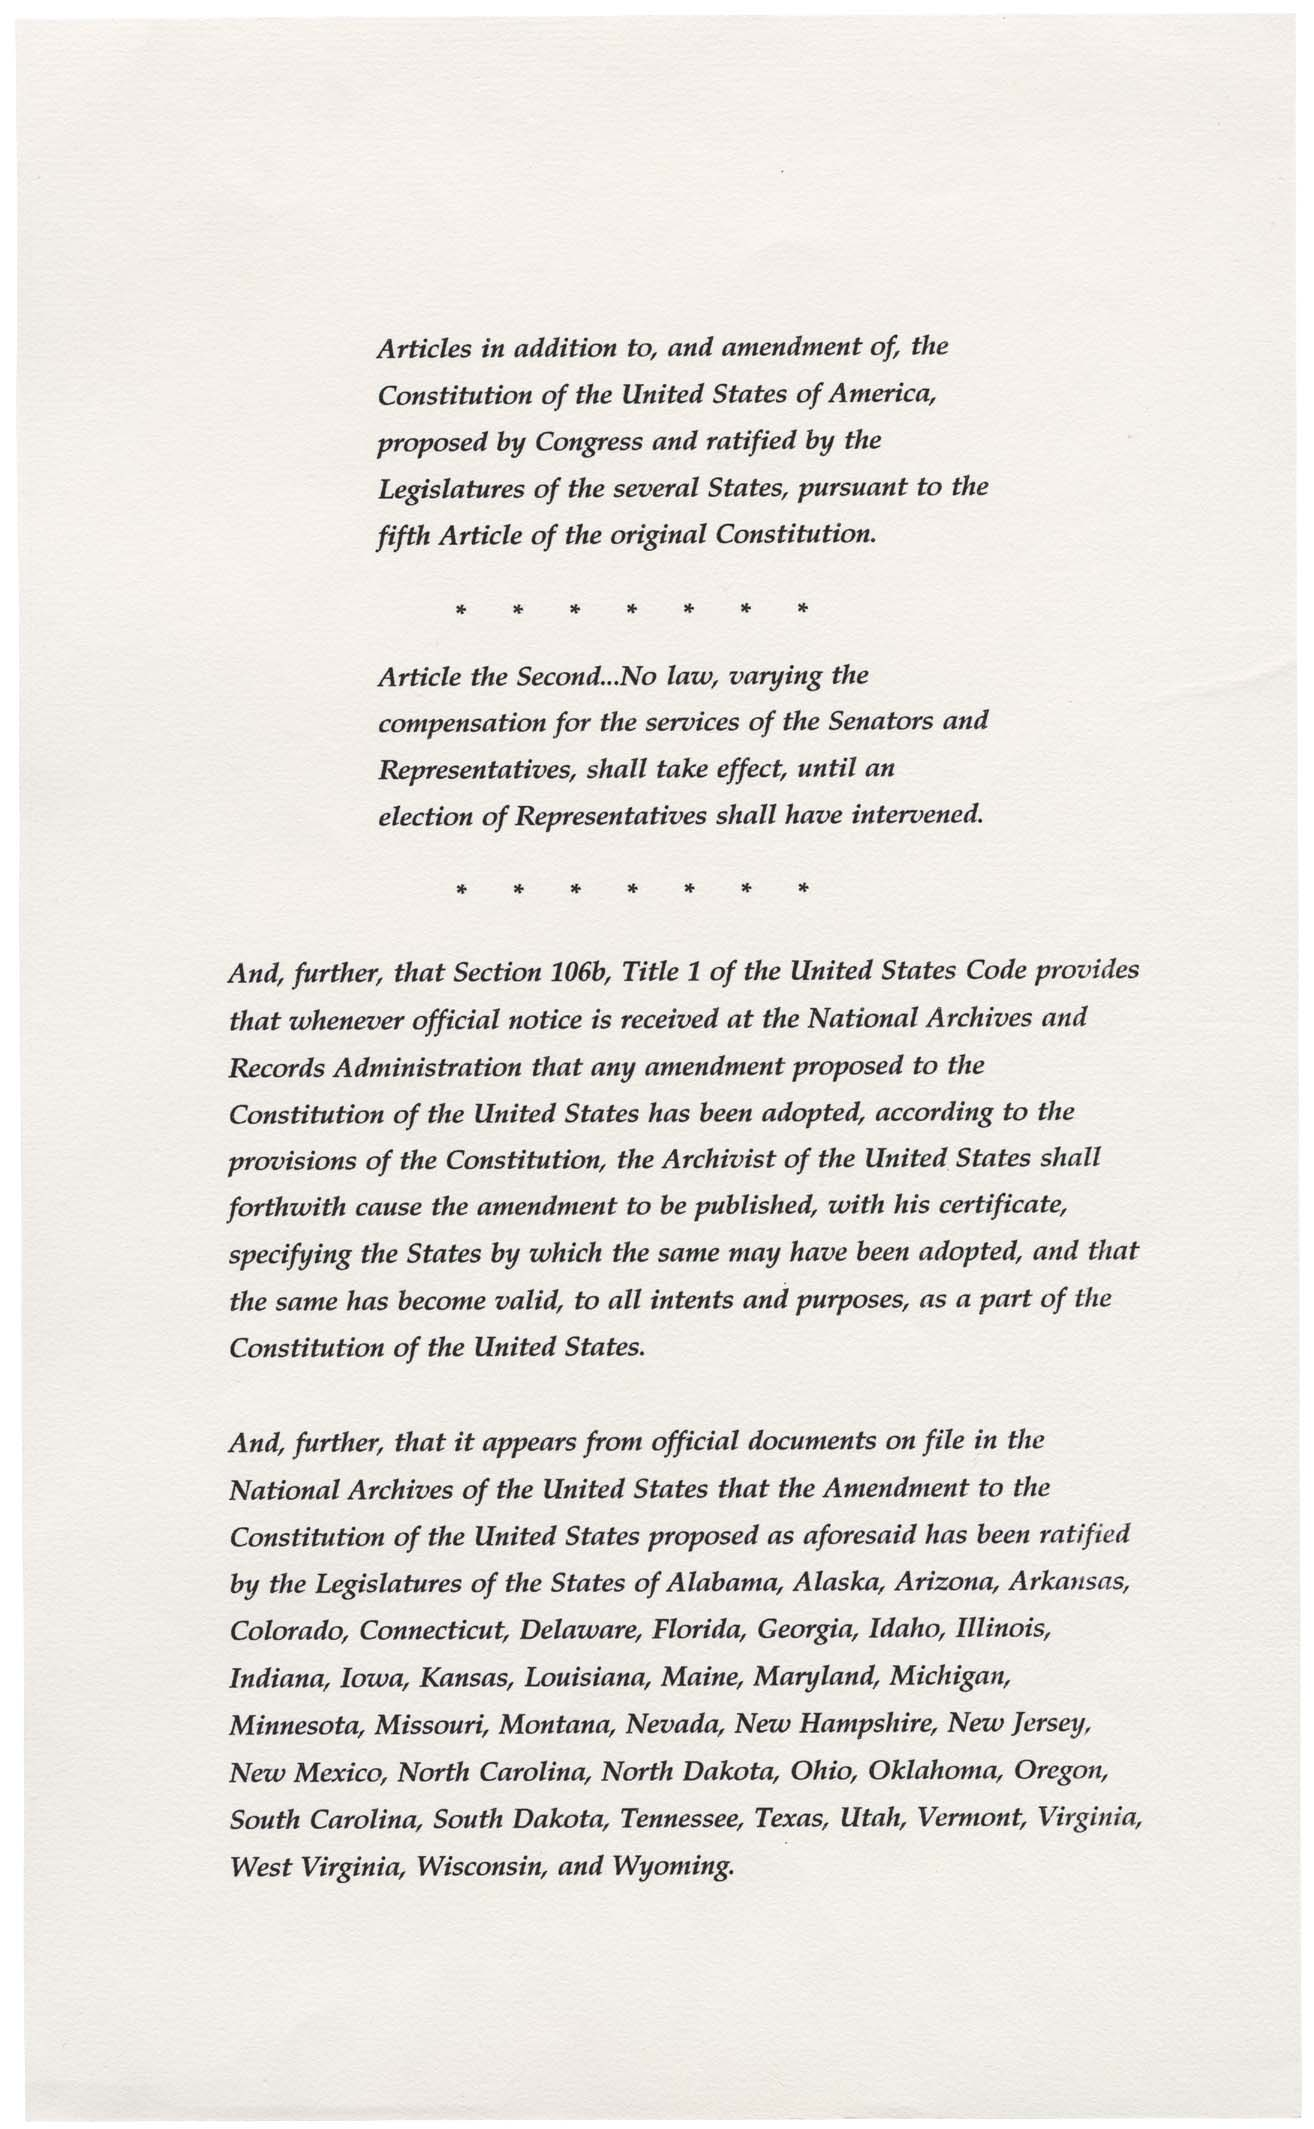 27th Amendment to the US Constitution - Page 2 of 3